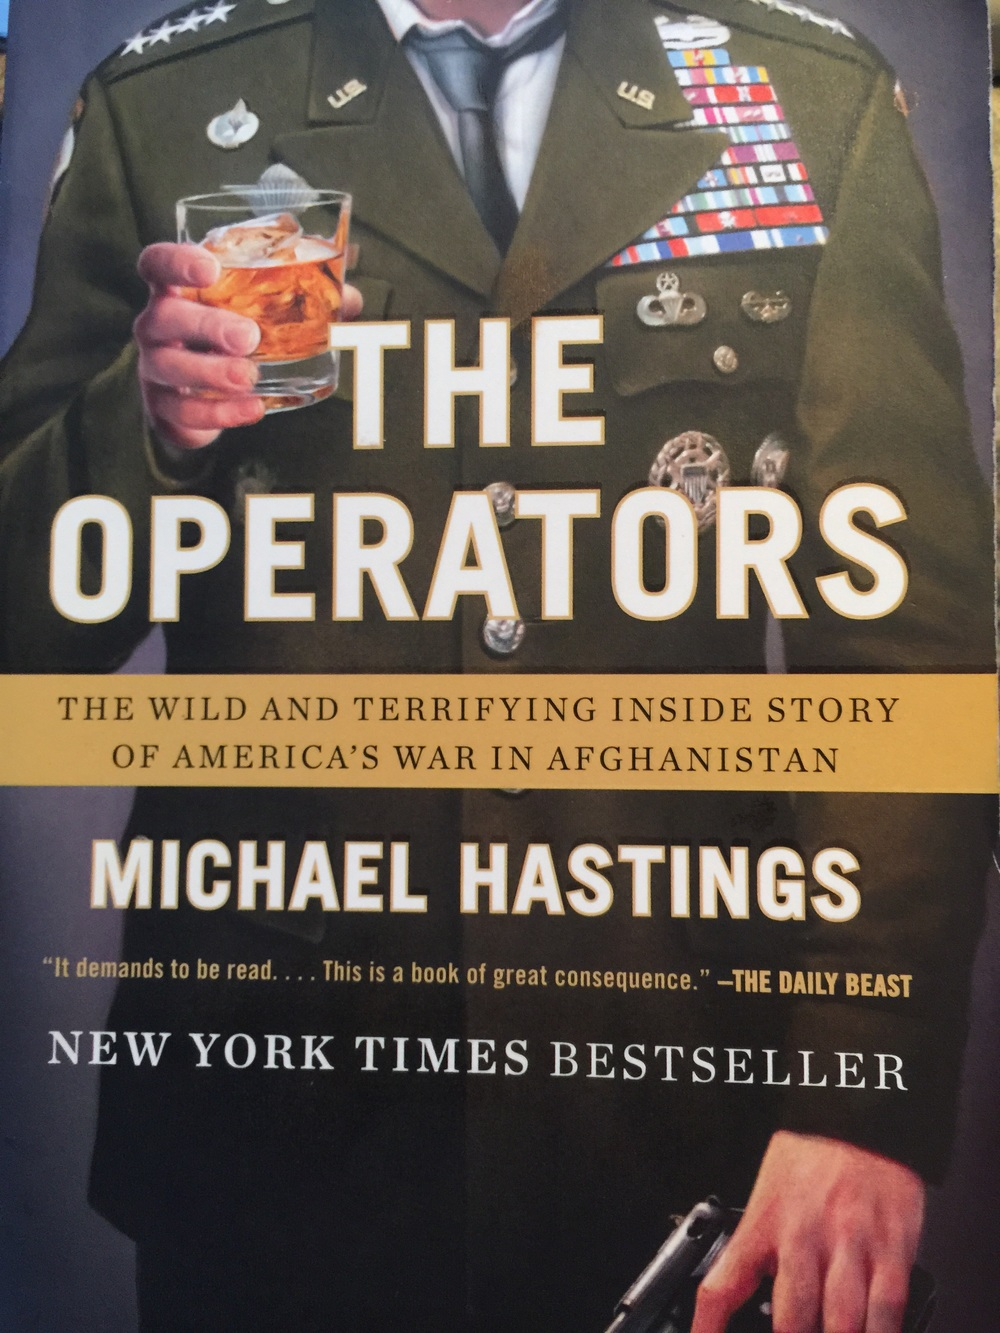 'War Machine' , the NETFLIX original film,was adapted from the Michael Hastings' book 'The Operators' by writer/ director David Michôd ('Animal Kingdom' and 'The Rover').